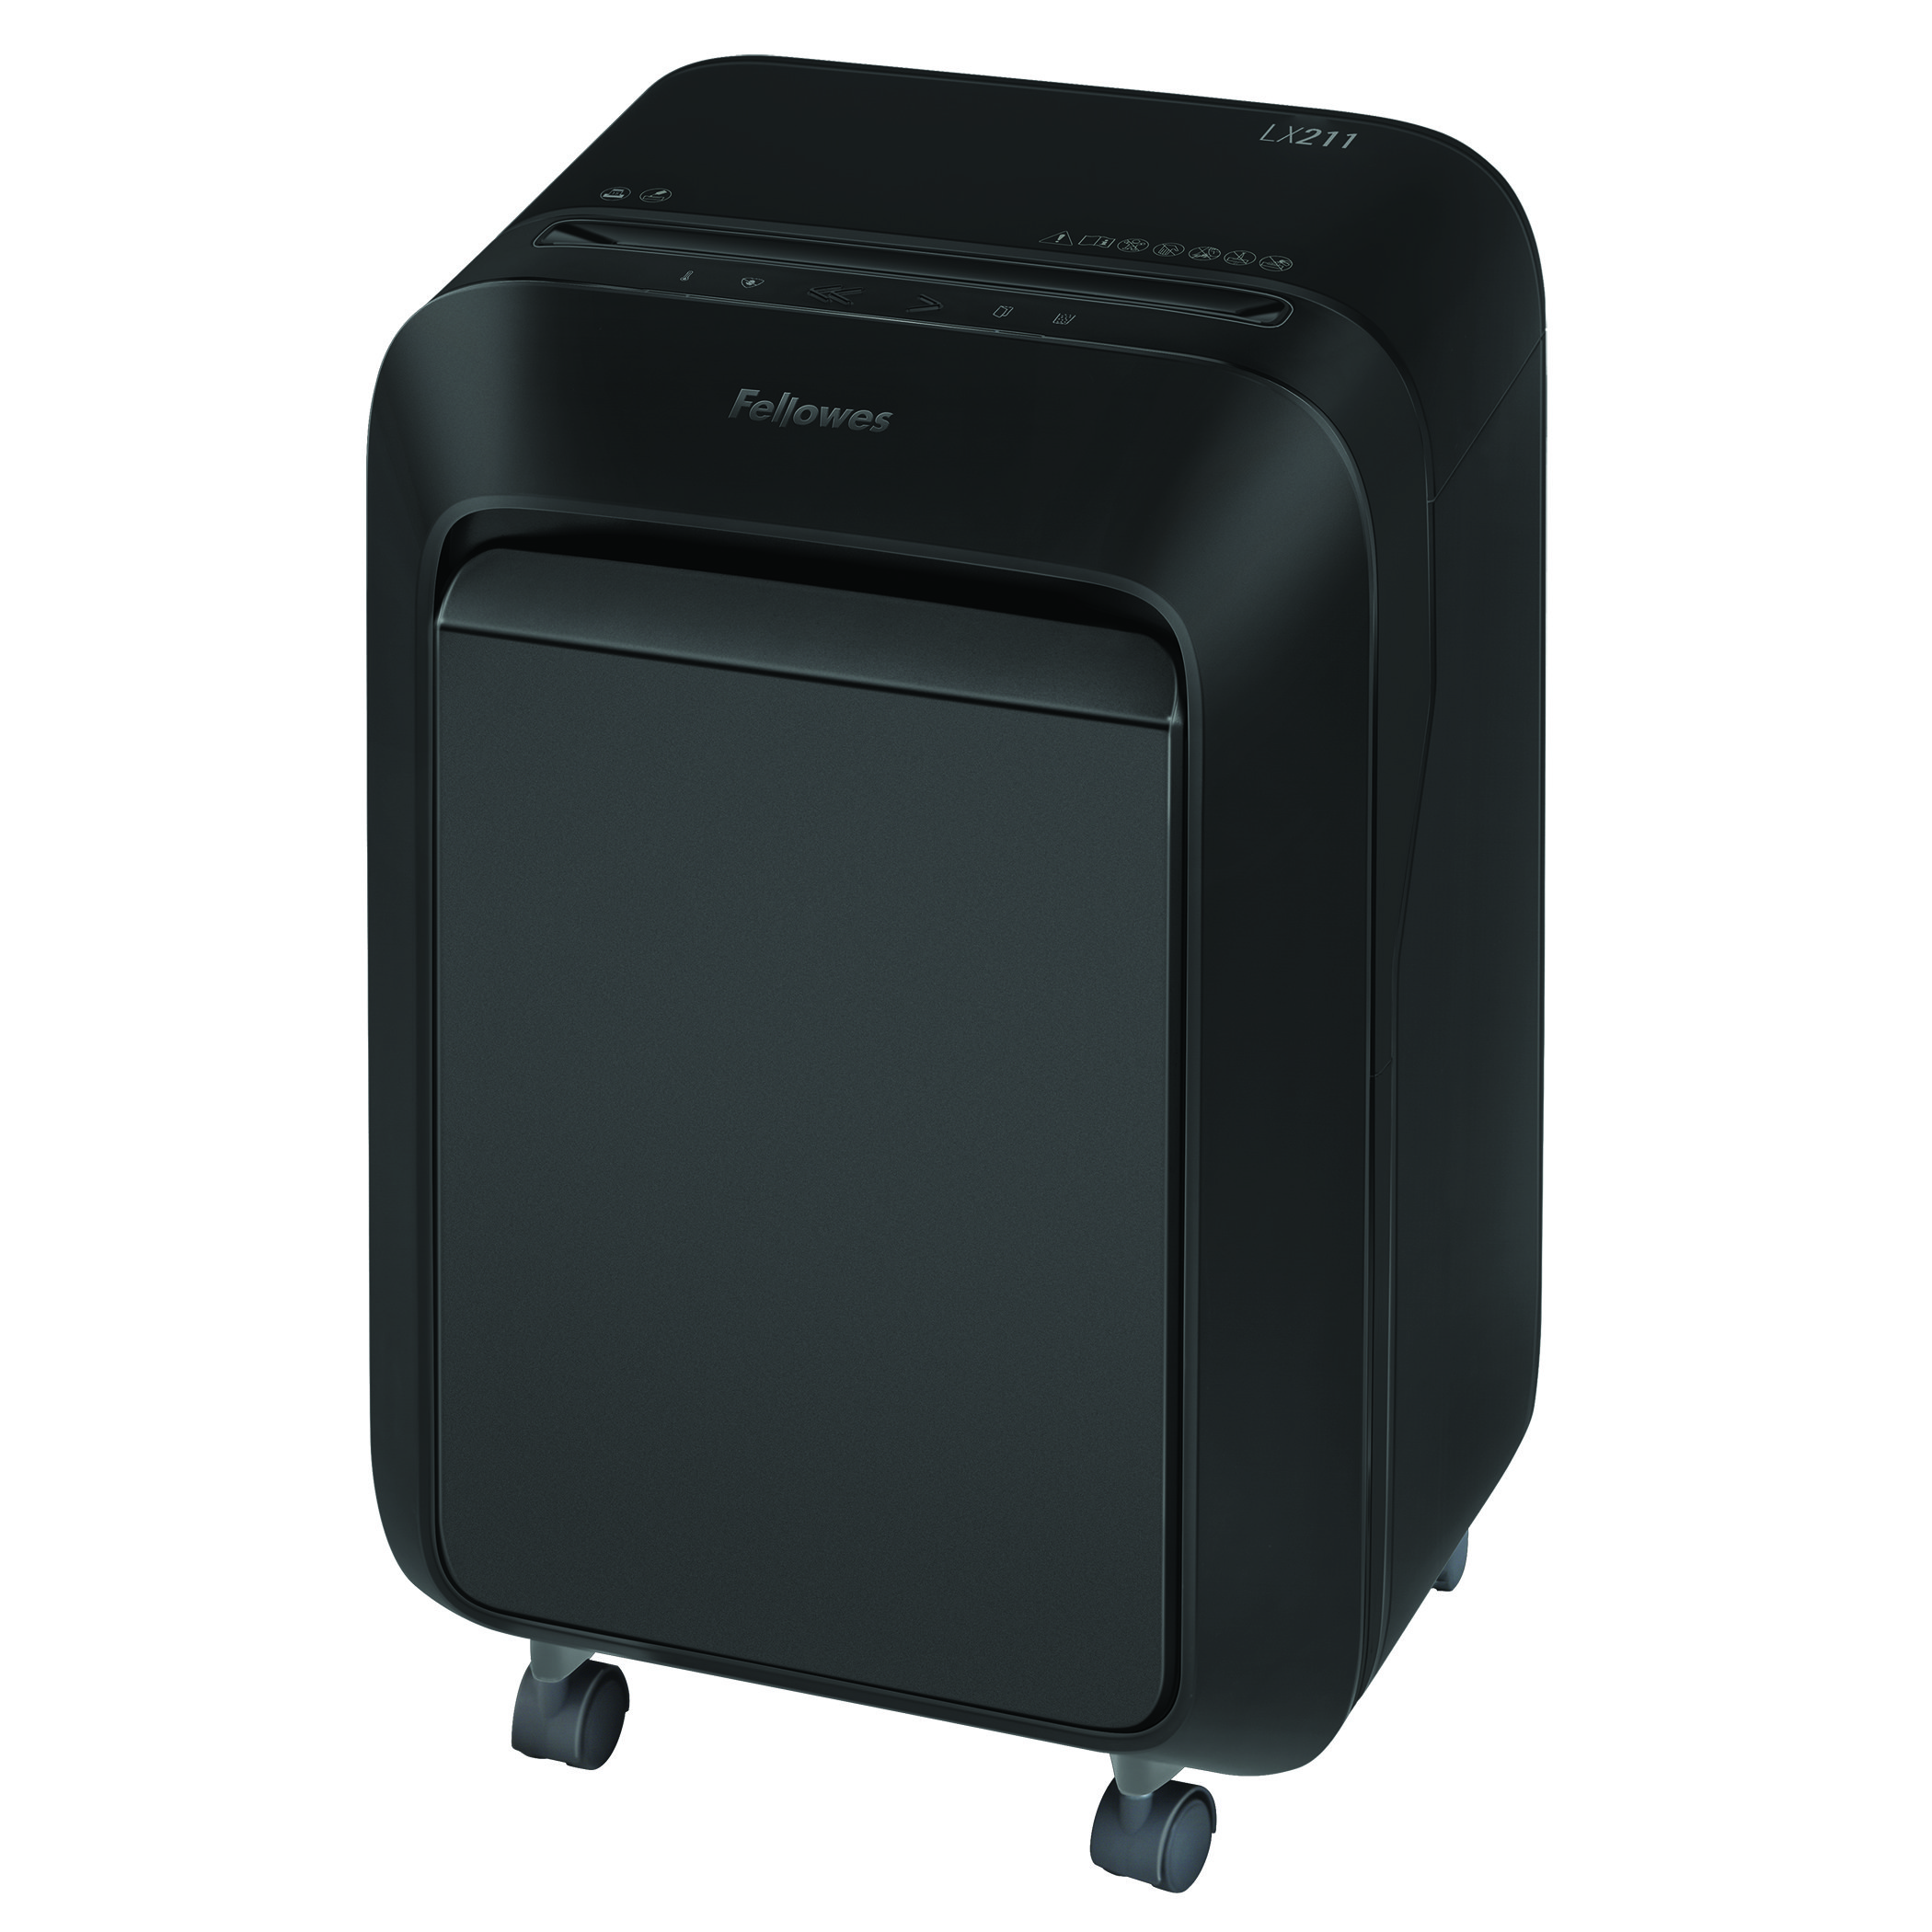 Shredders Fellowes Microshred LX211 Black Shredder